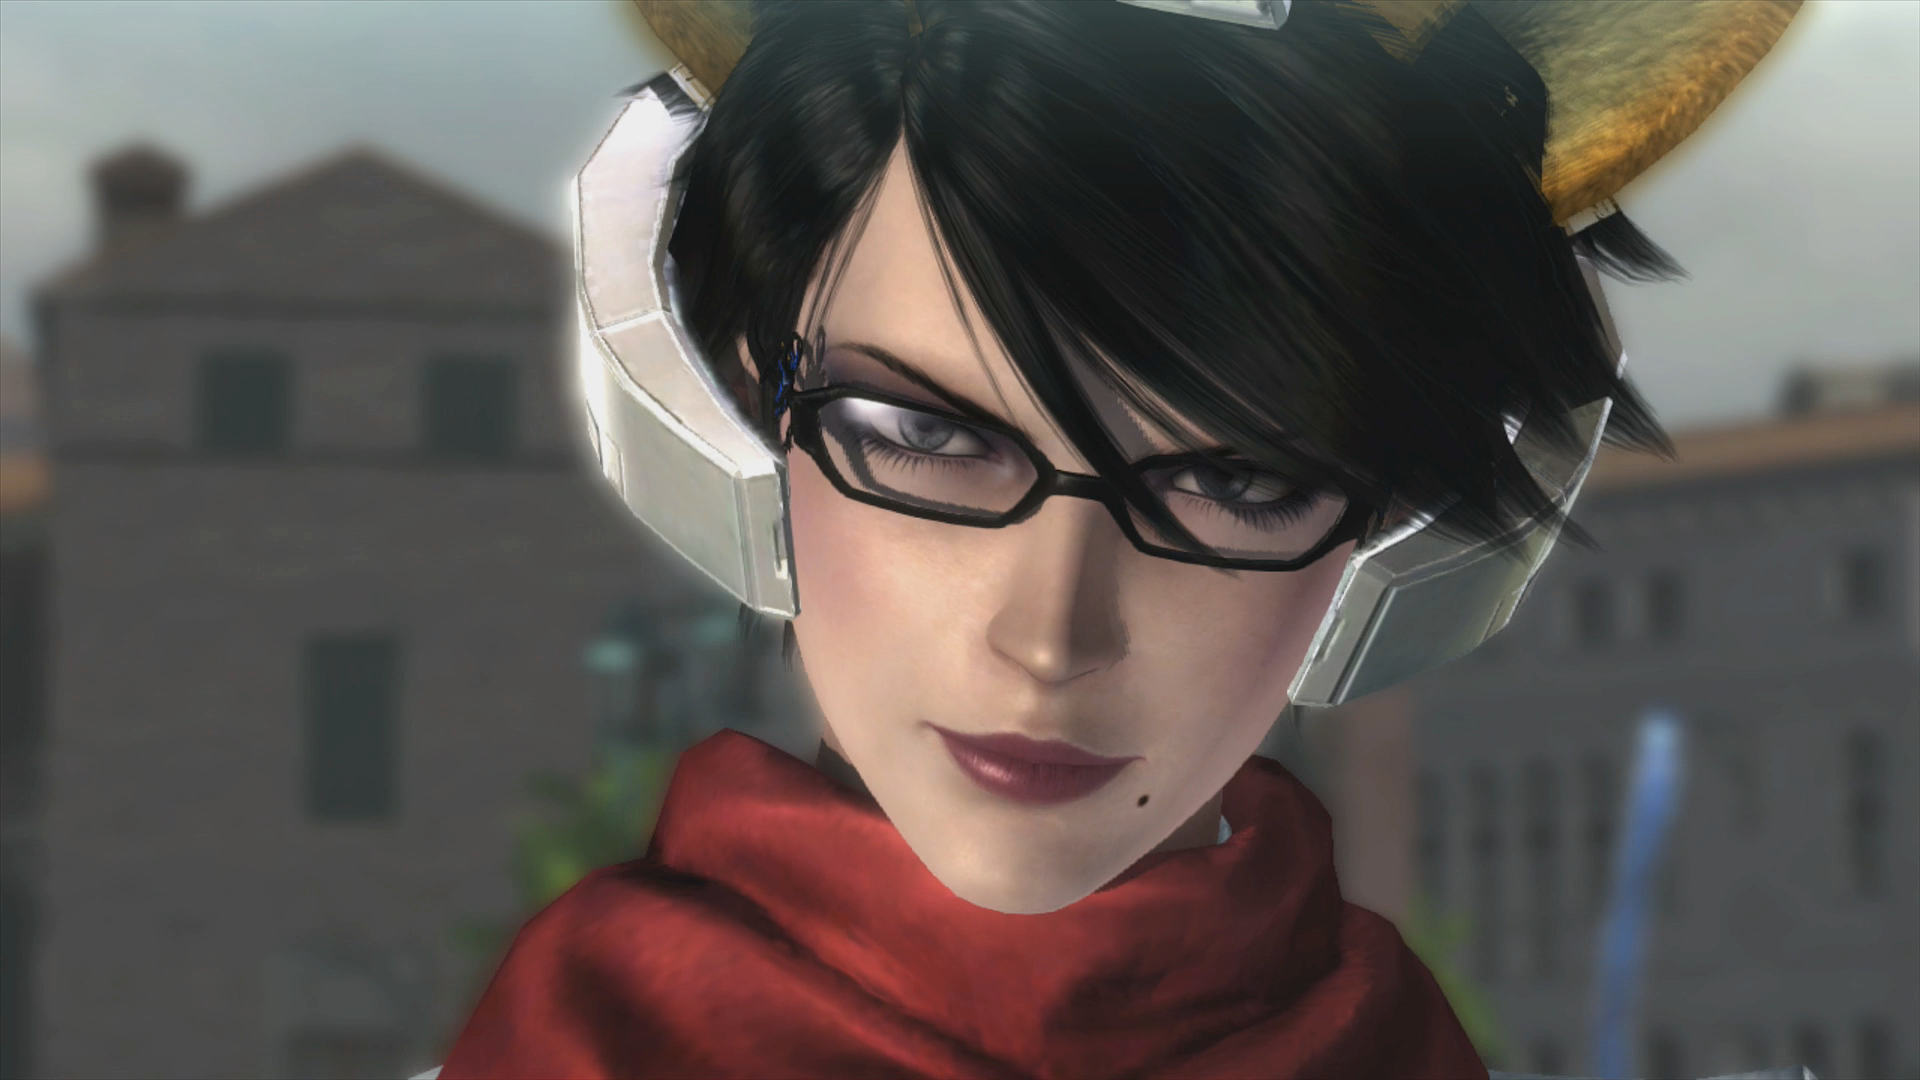 Bayonetta is more than a sex symbol, and she knows how to capitalize on her looks to defeat demons